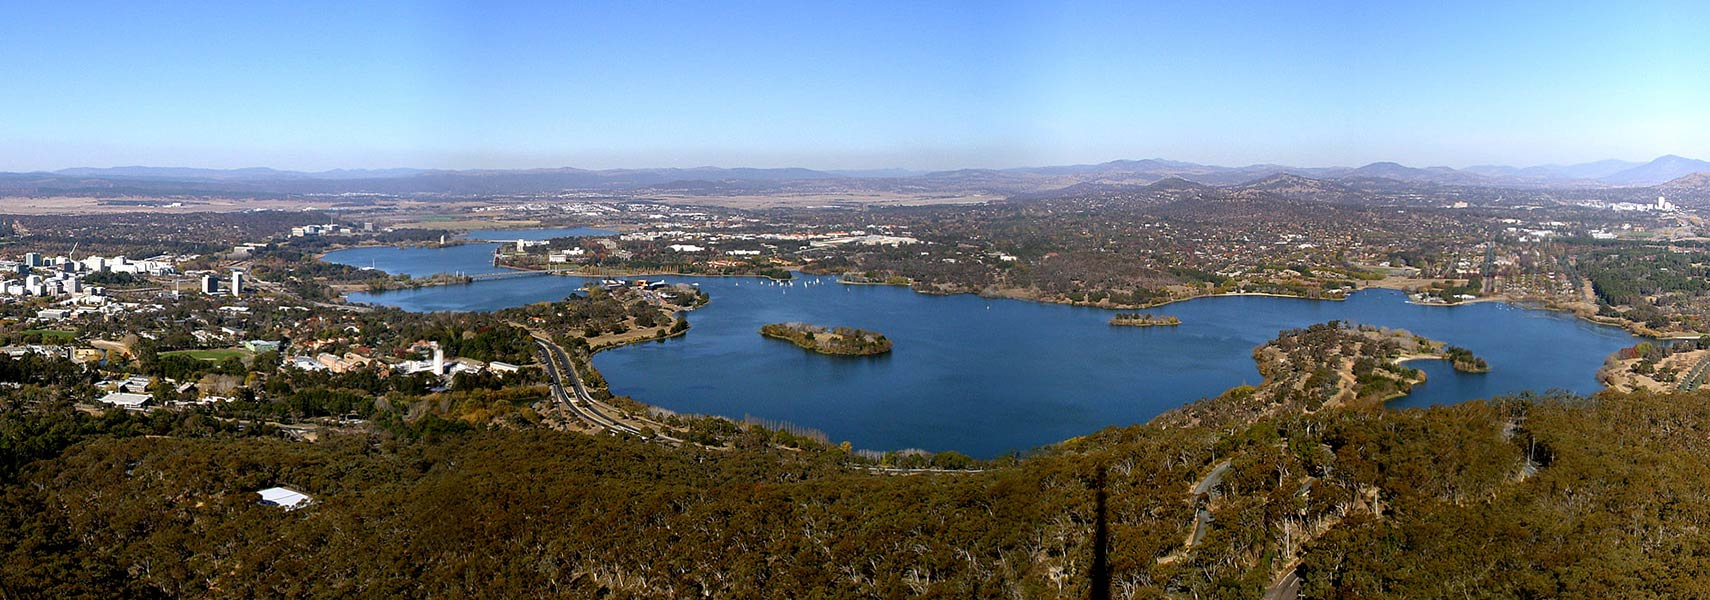 View of Canberra, Australia, from the Telstra Tower on Black Mountain